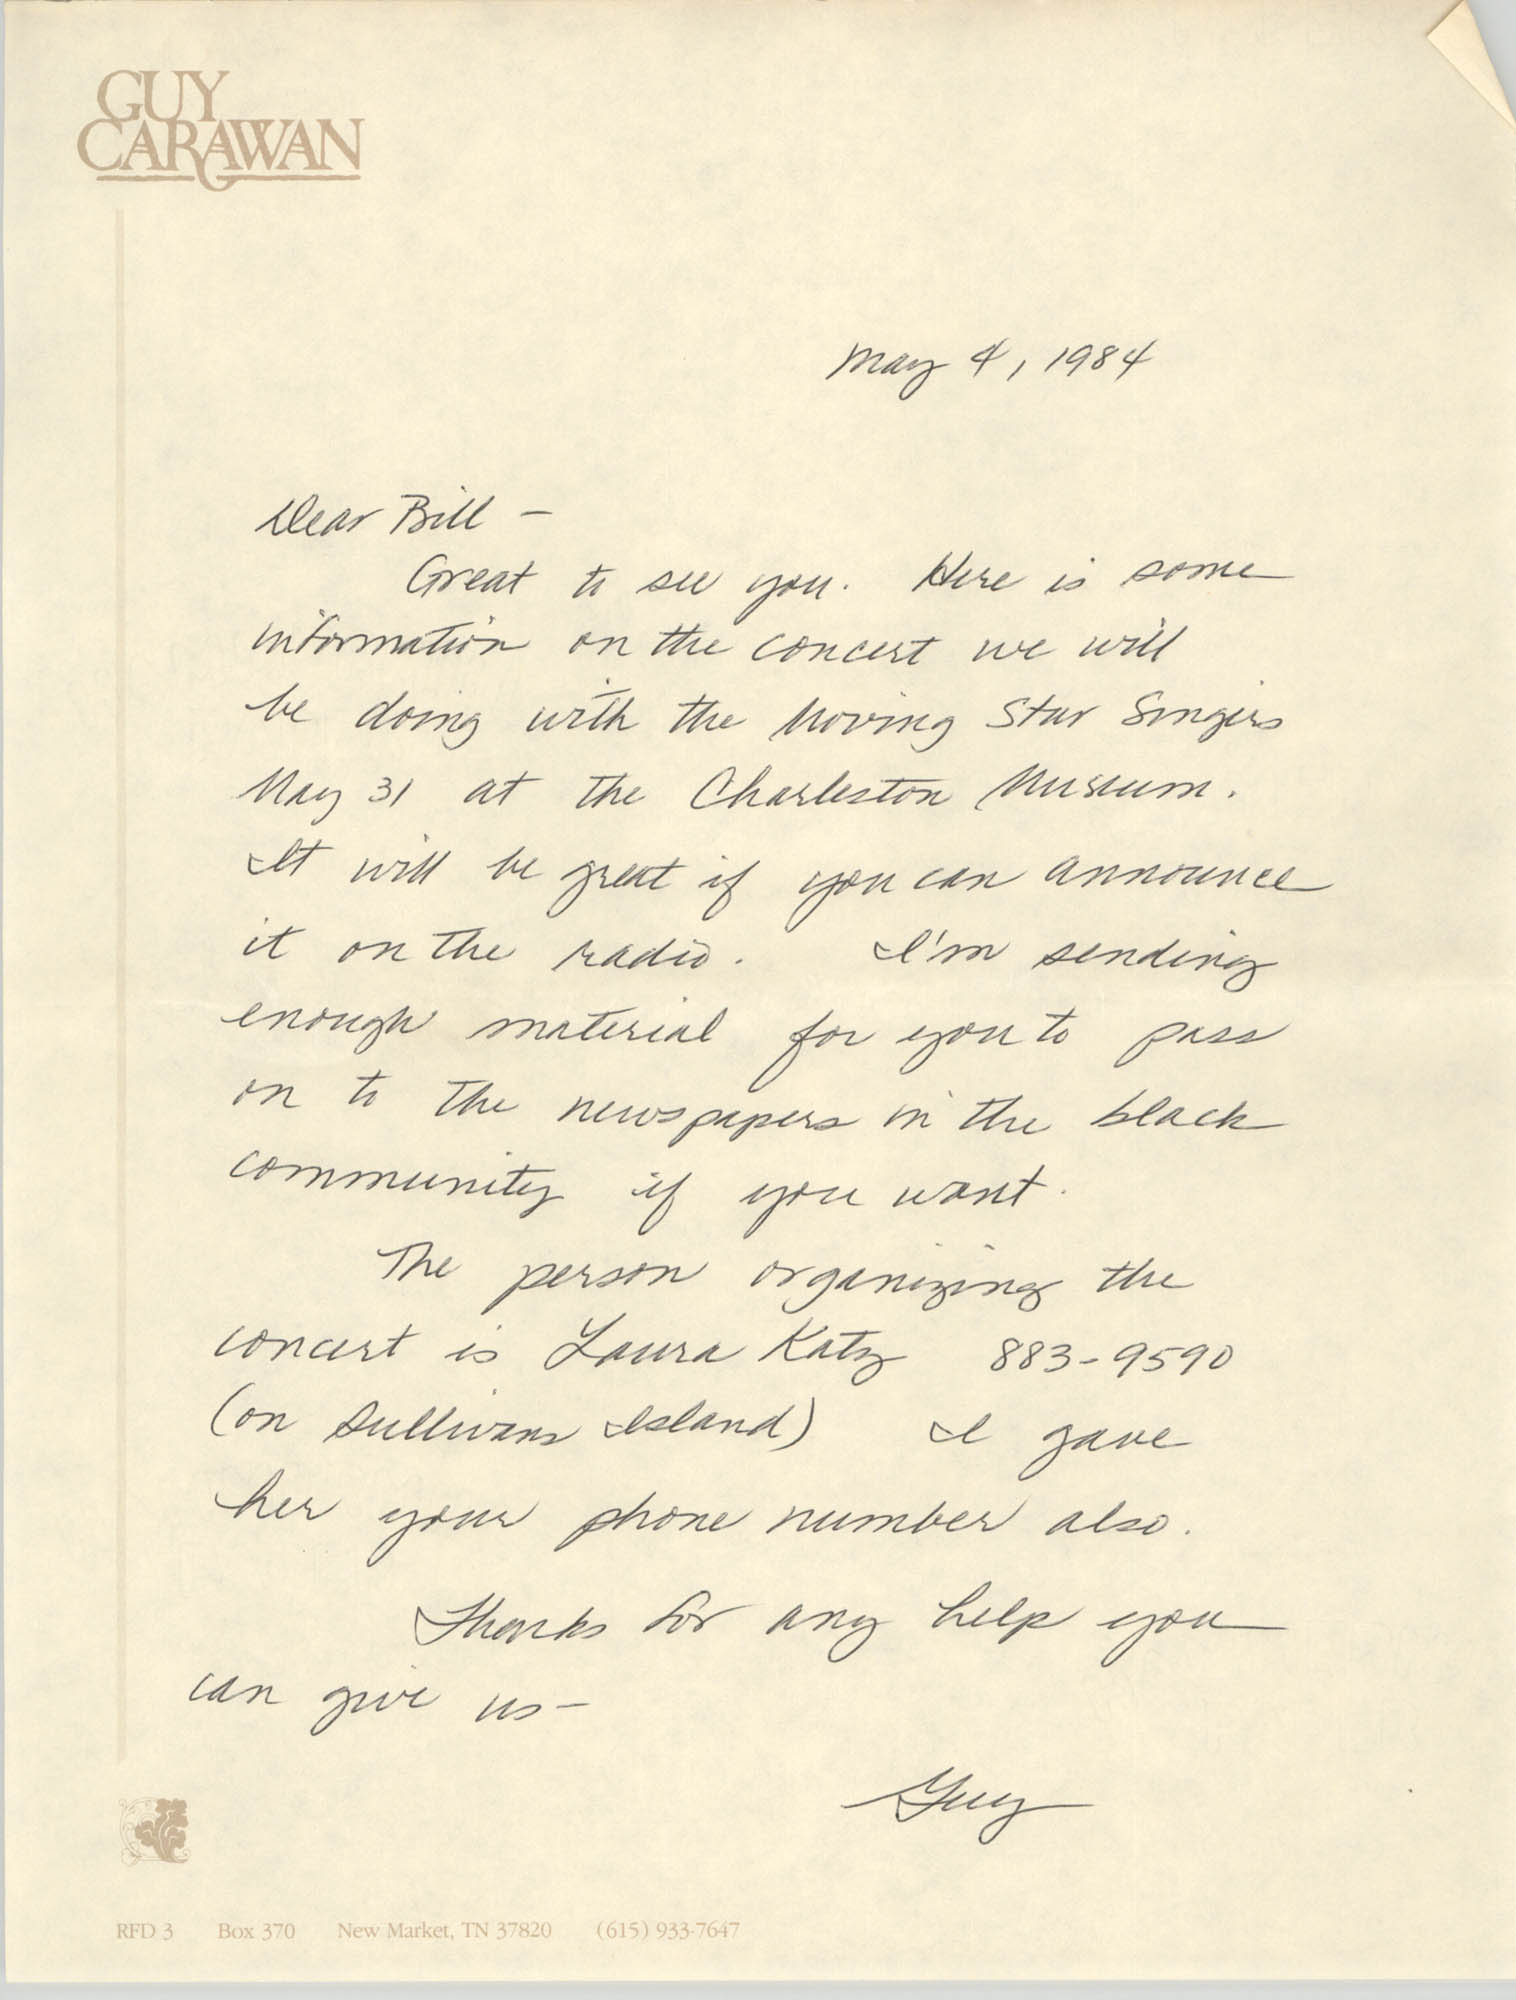 Letter from Guy Carawan to William Saunders, May 4, 1984